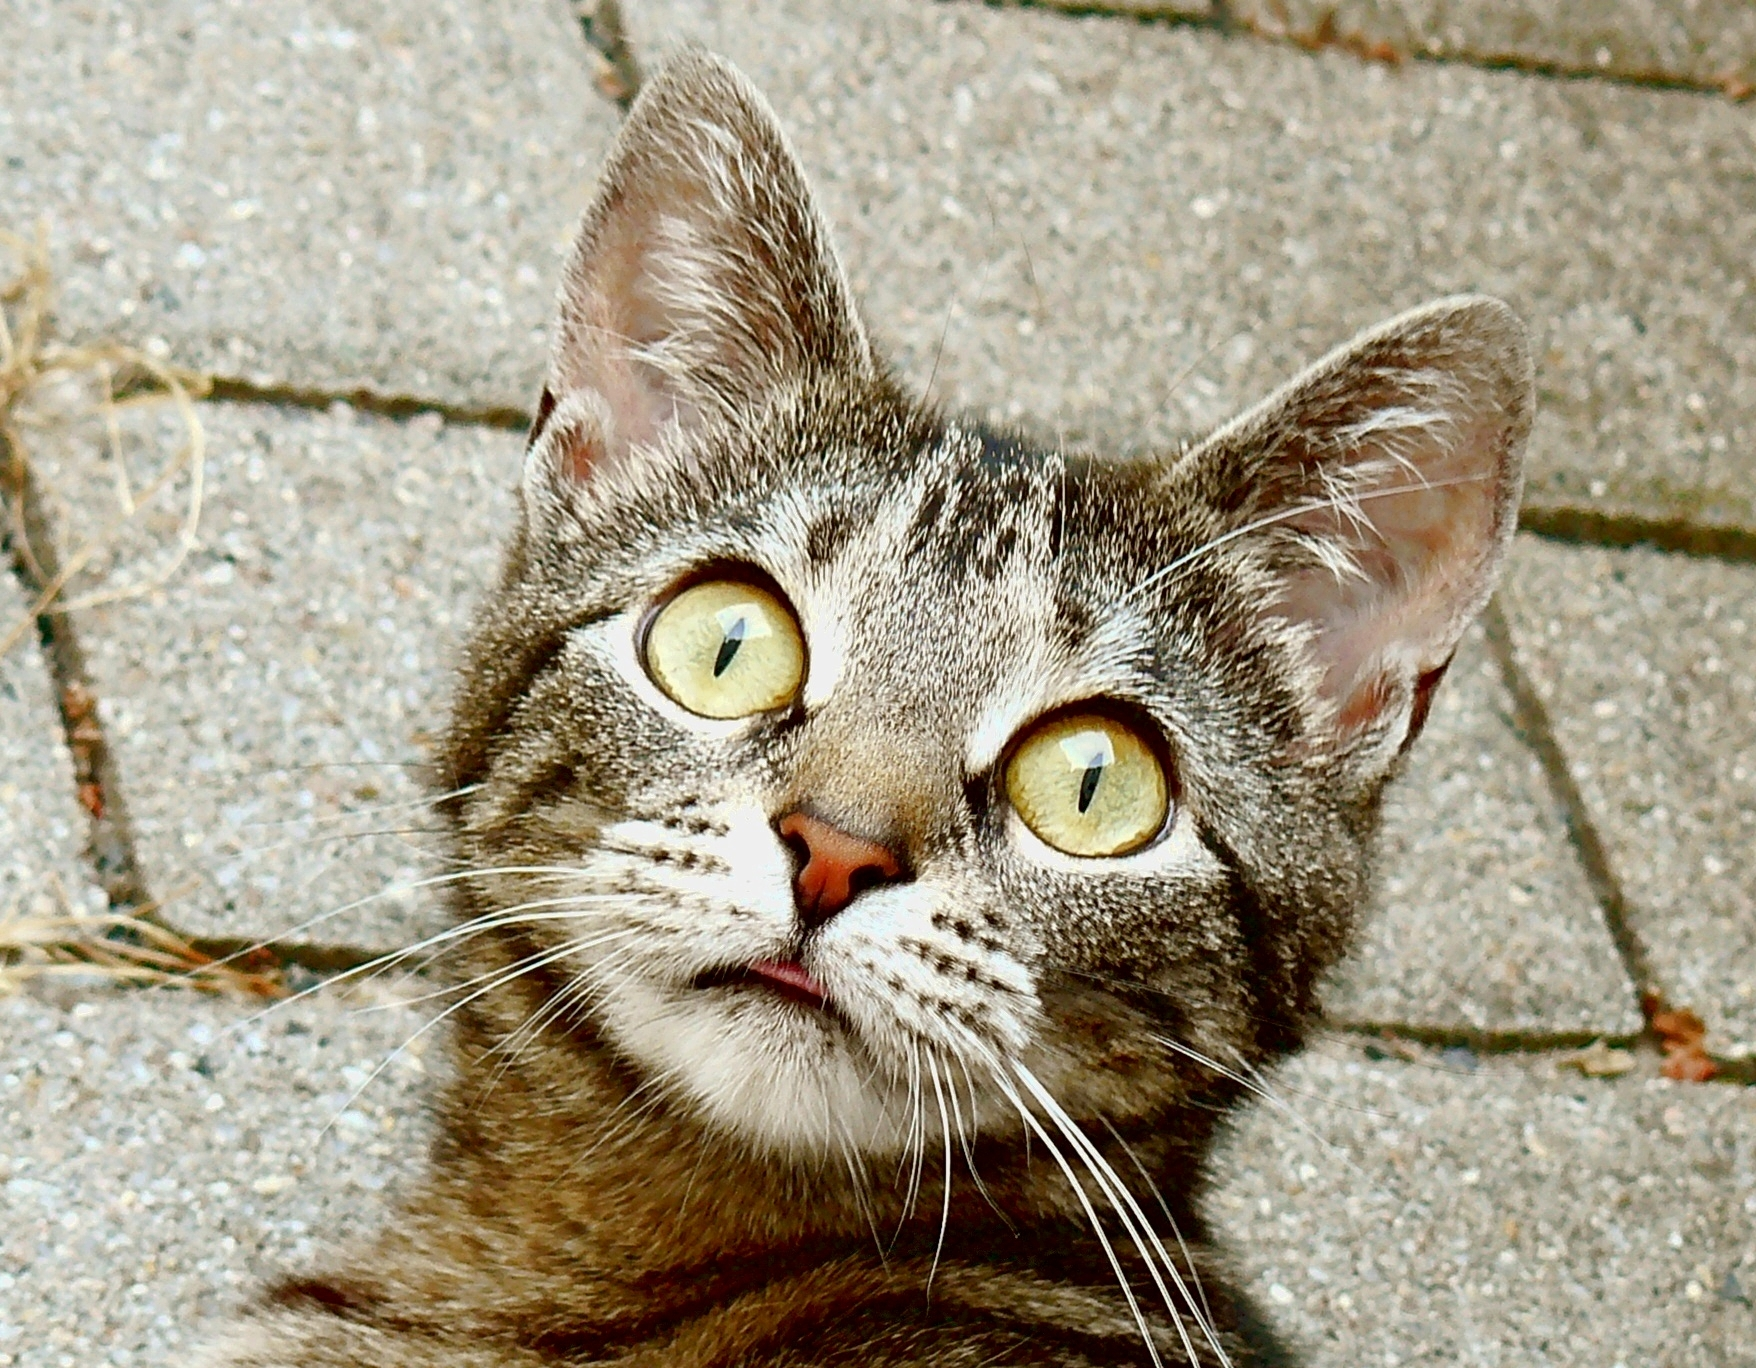 http://upload.wikimedia.org/wikipedia/commons/f/f9/Surprised_young_cat.JPG